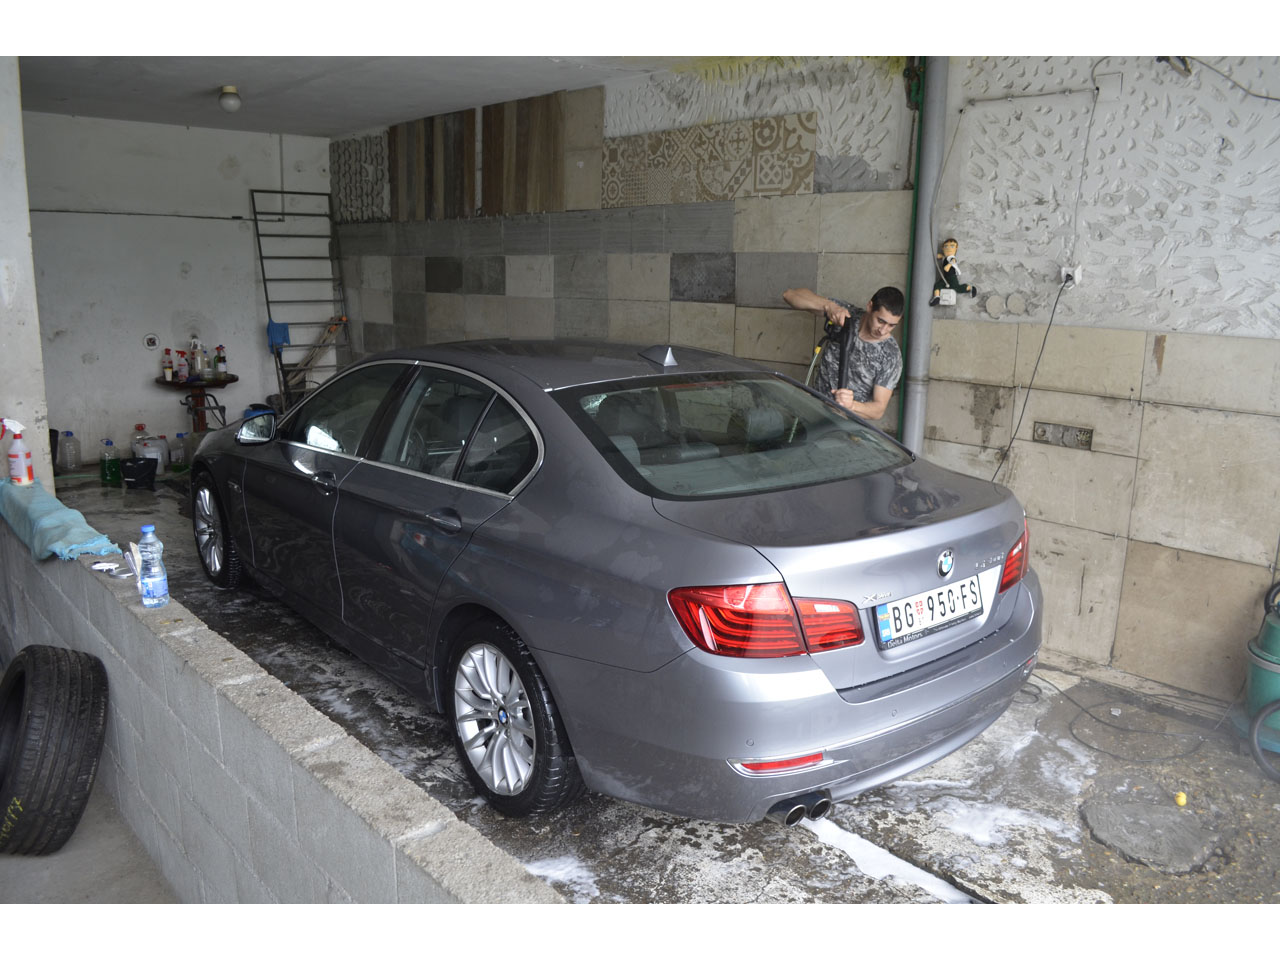 TIRE REPAIR DRAGAN Tire repair Beograd